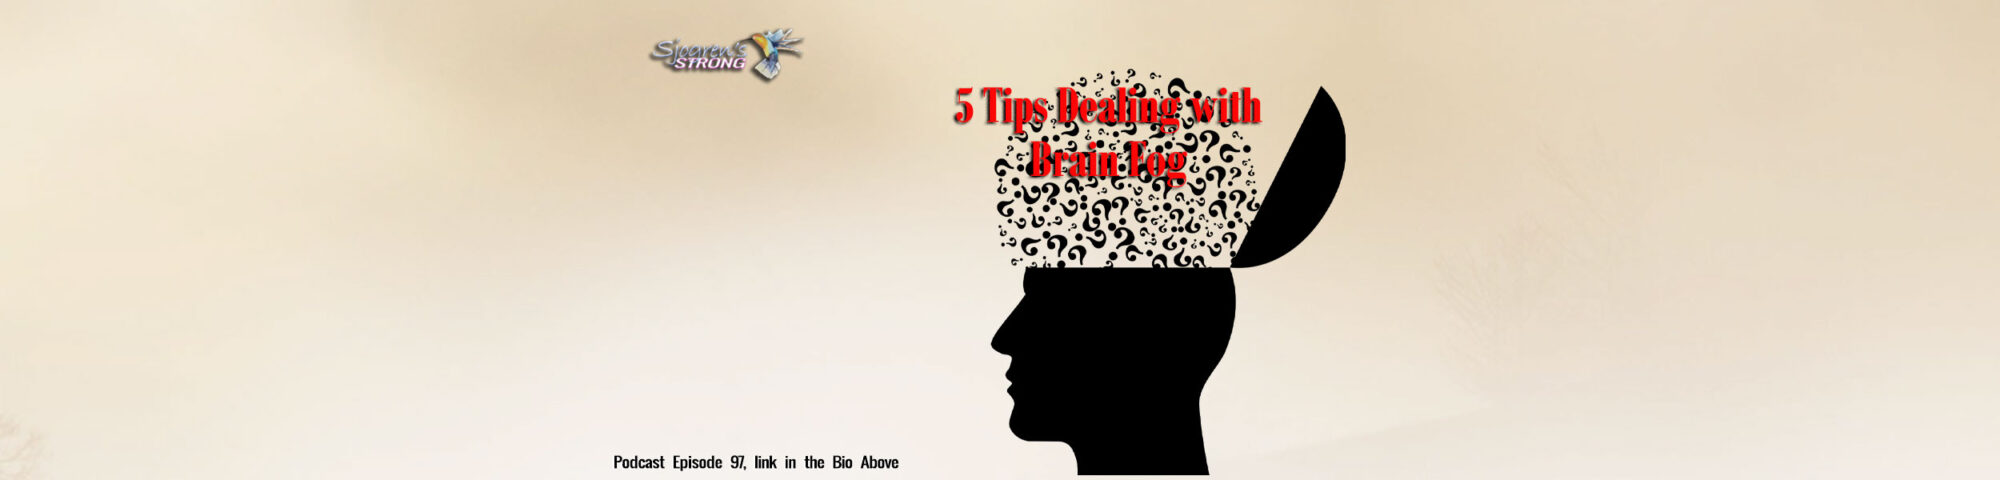 5 Tips Dealing with Brain Fog